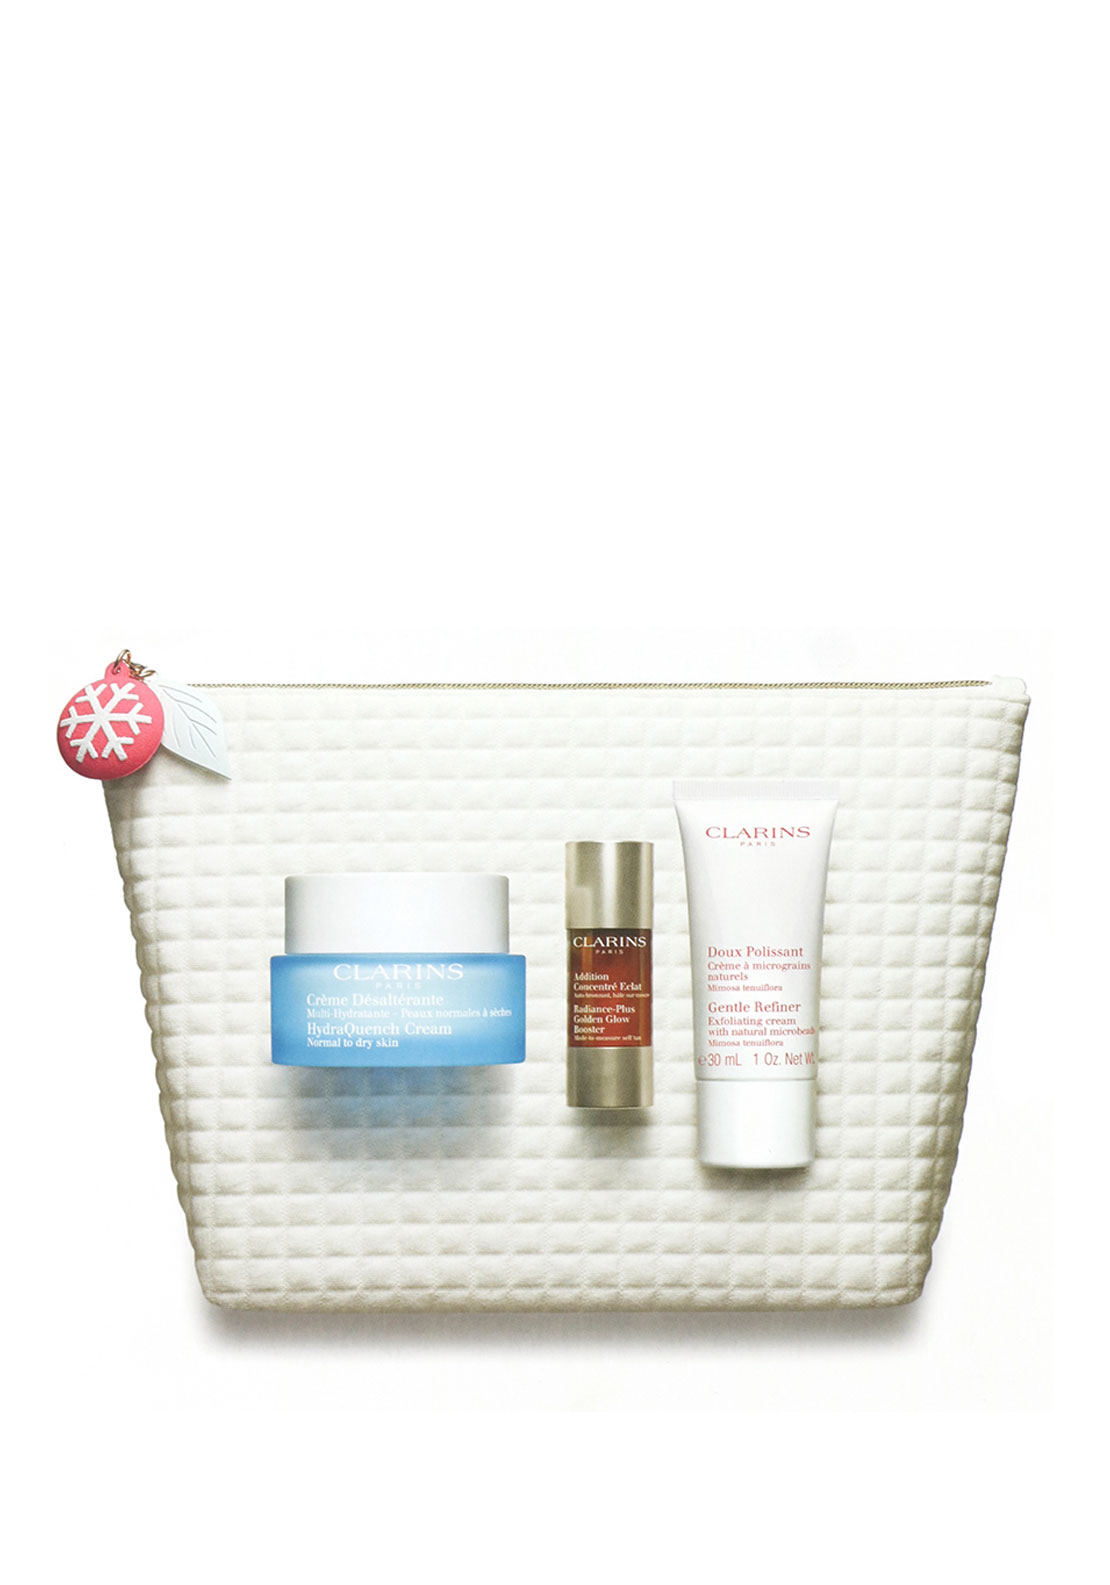 Clarins Christmas '3 drops to sun-kissed skin 'Gift Set